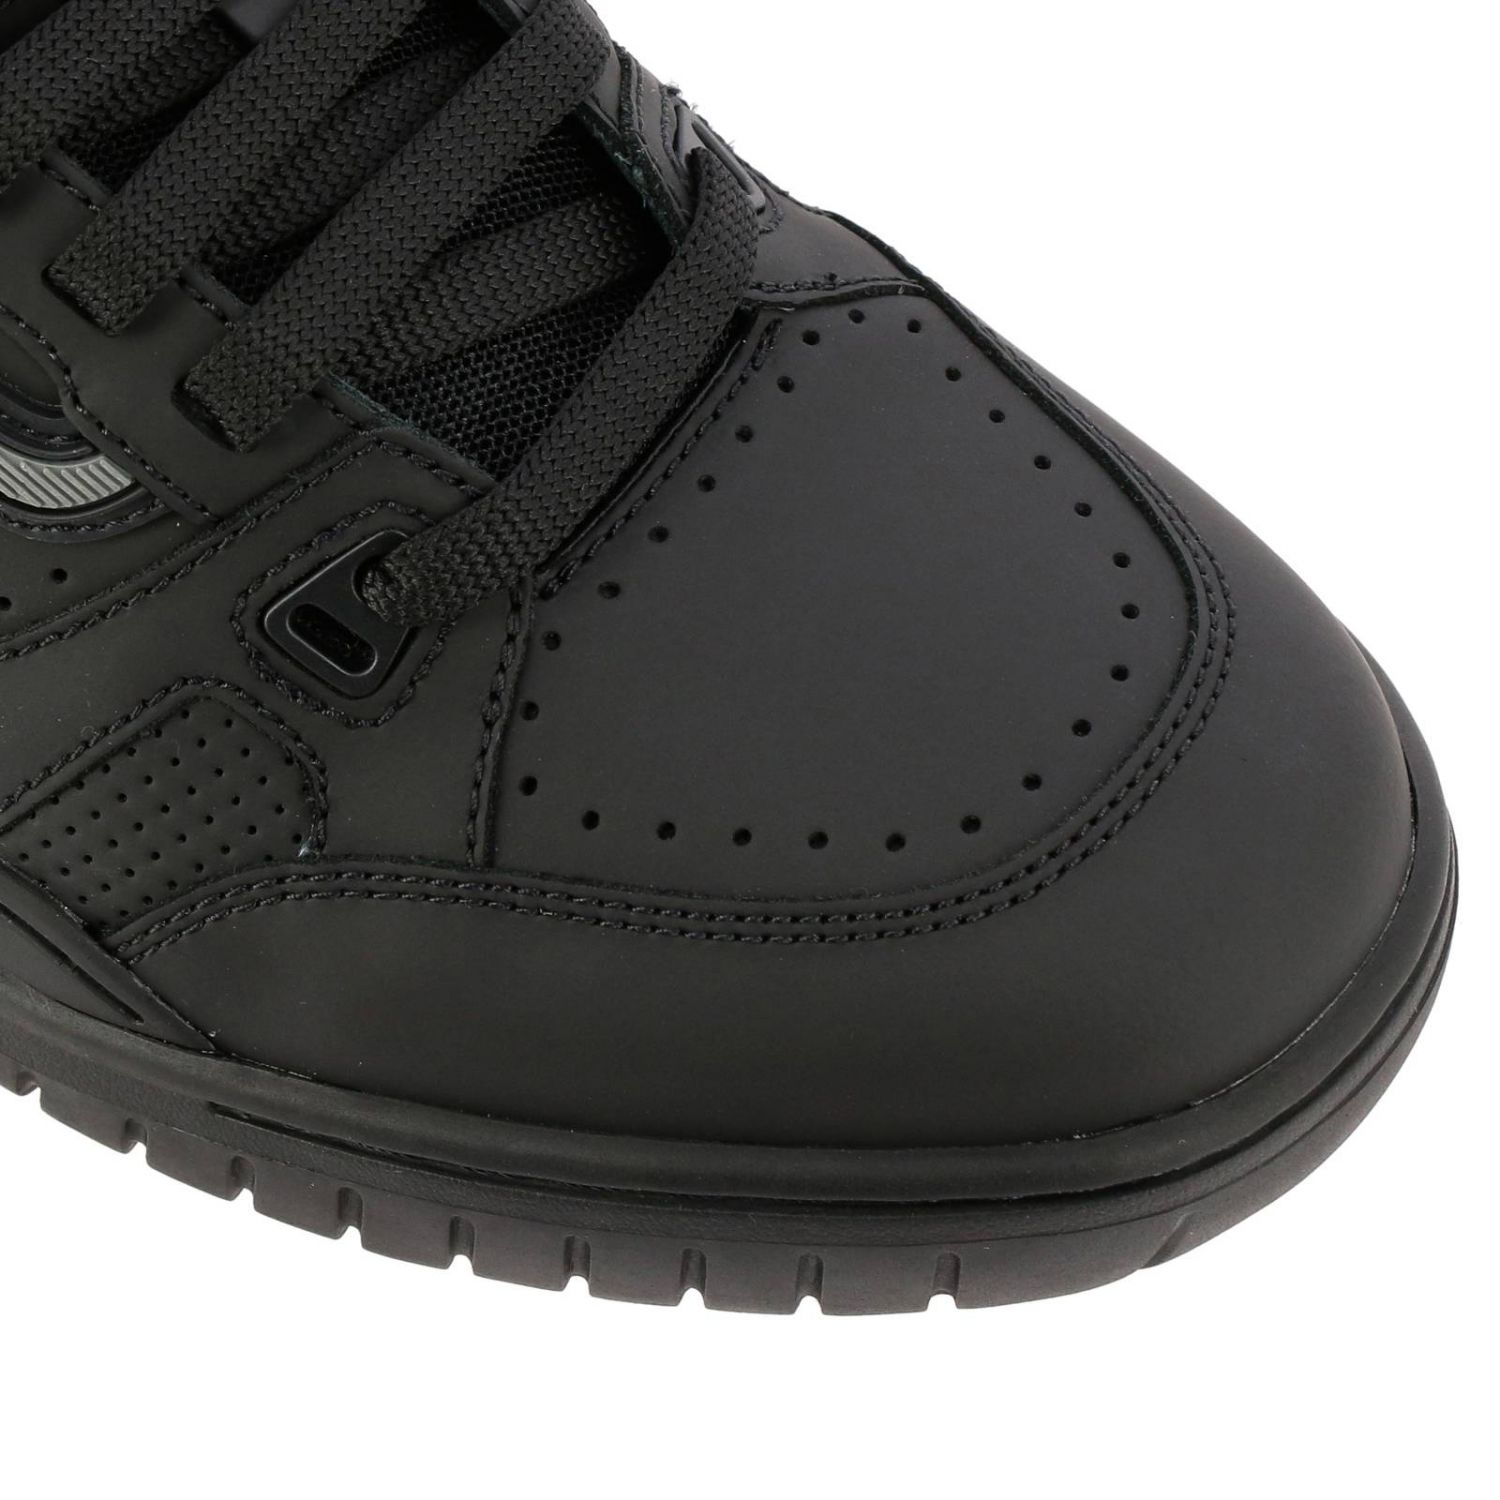 Kuba Bally sneakers in leather with micro holes and maxi rubber logo black 4